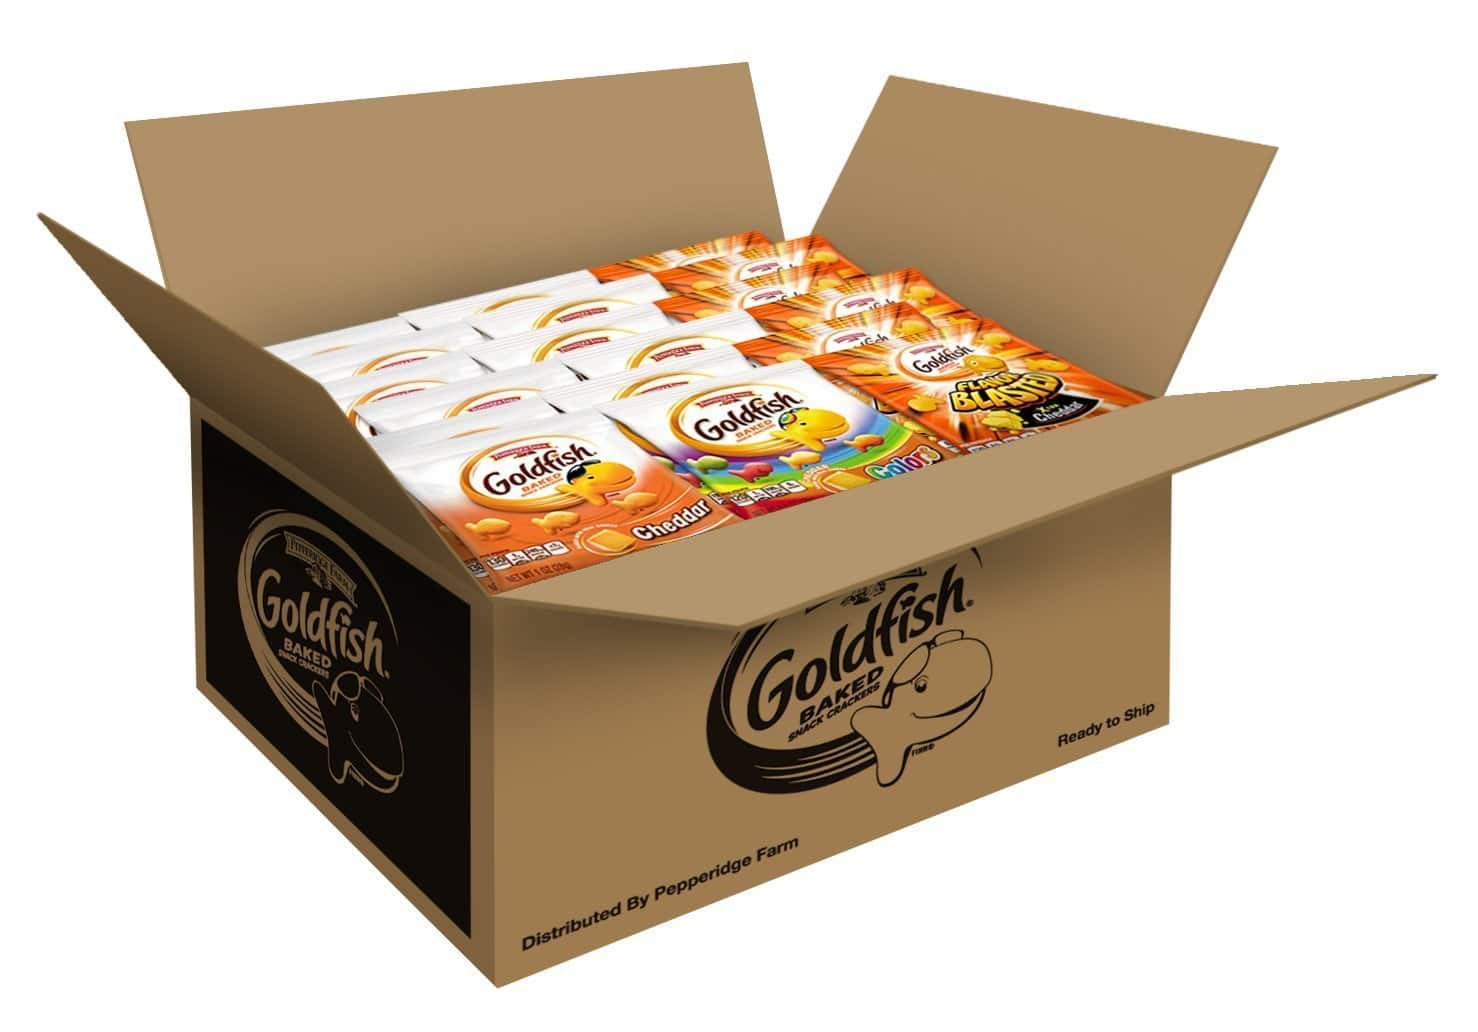 PRICE DROP - Pepperidge Farm Goldfish Crackers 40 Count Variety Pack, 37.6 Ounce - $9.80/FS w/Prime